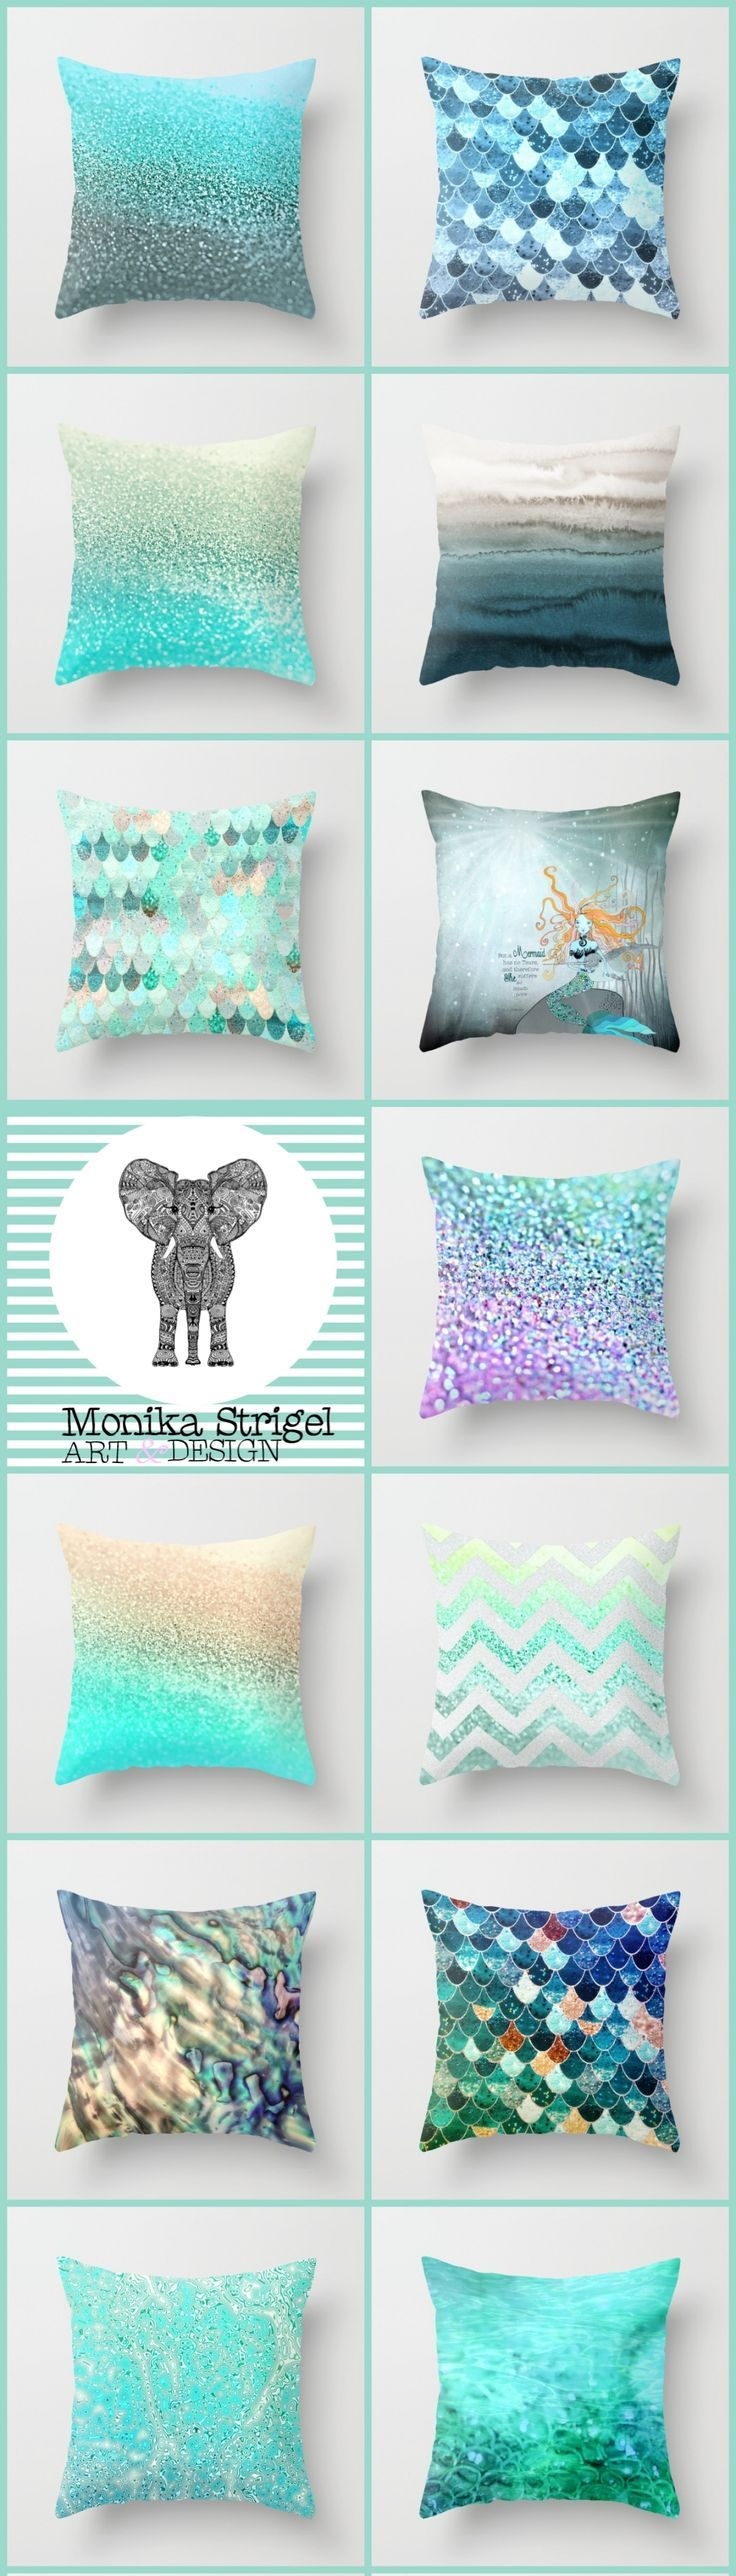 Add some mermaid magic to your home or apartment. Mermaids are one of the top summer trends of 2016.